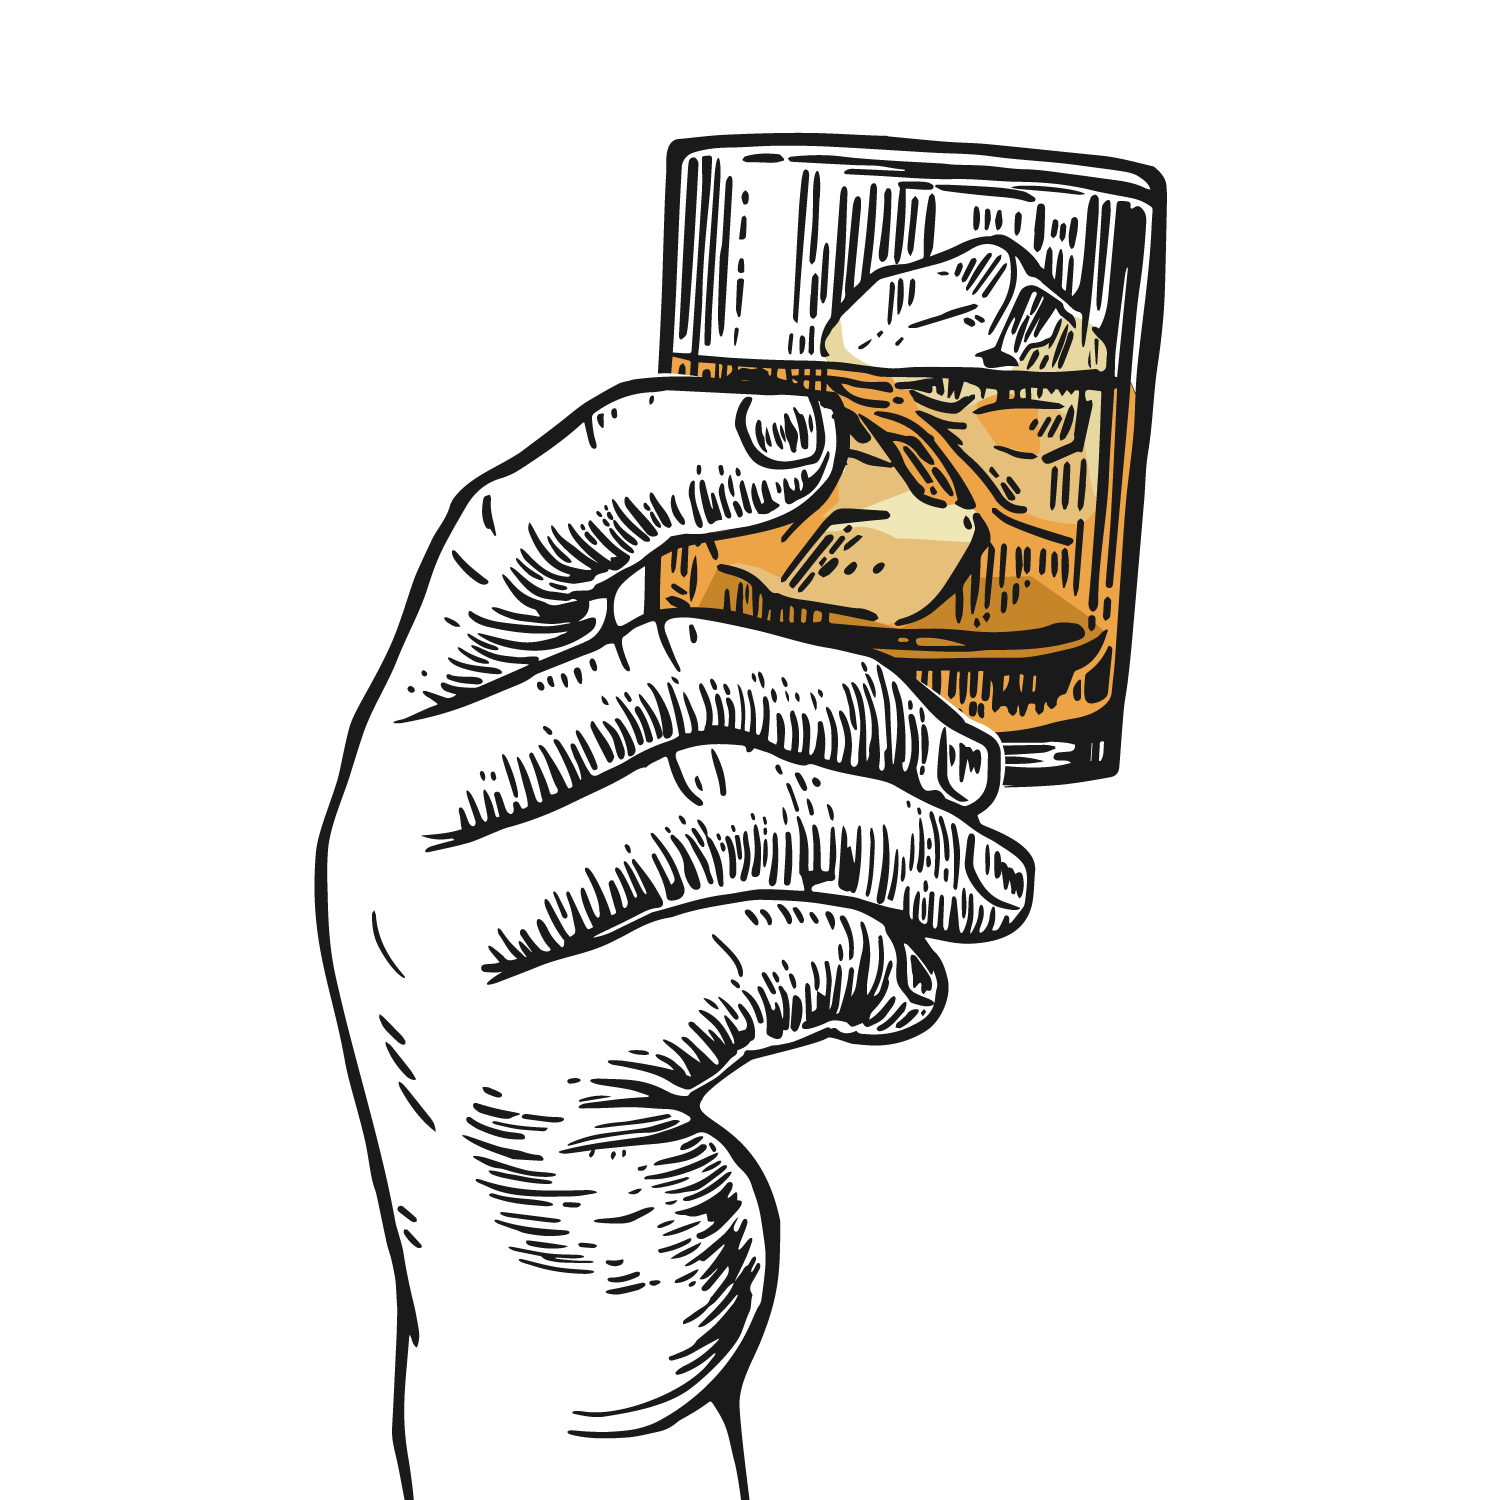 Whiskey drawing cartoon. Scotch whisky bourbon tequila